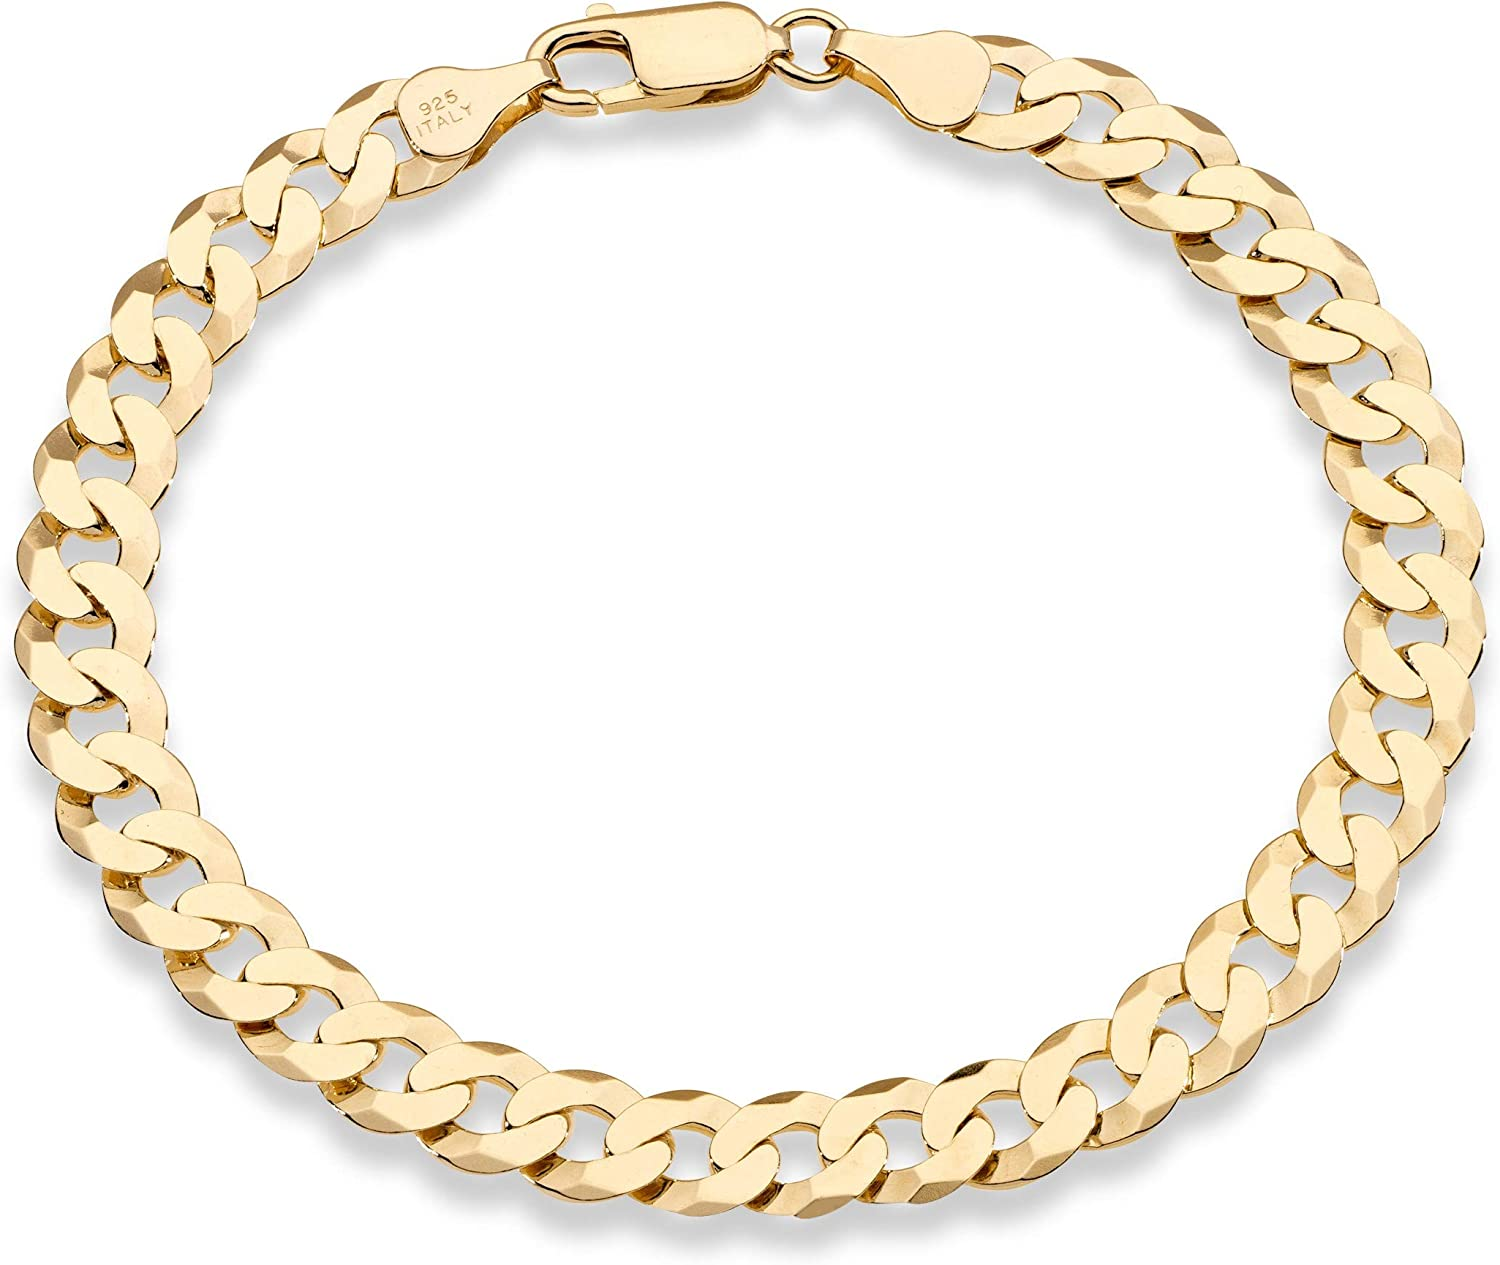 Miabella 18K Gold Over Sterling Silver Italian 7mm Solid Diamond-Cut Cuban Link Curb Chain Bracelet for Men Women 8, 8.5, 9 Inch, 925 Made in Italy